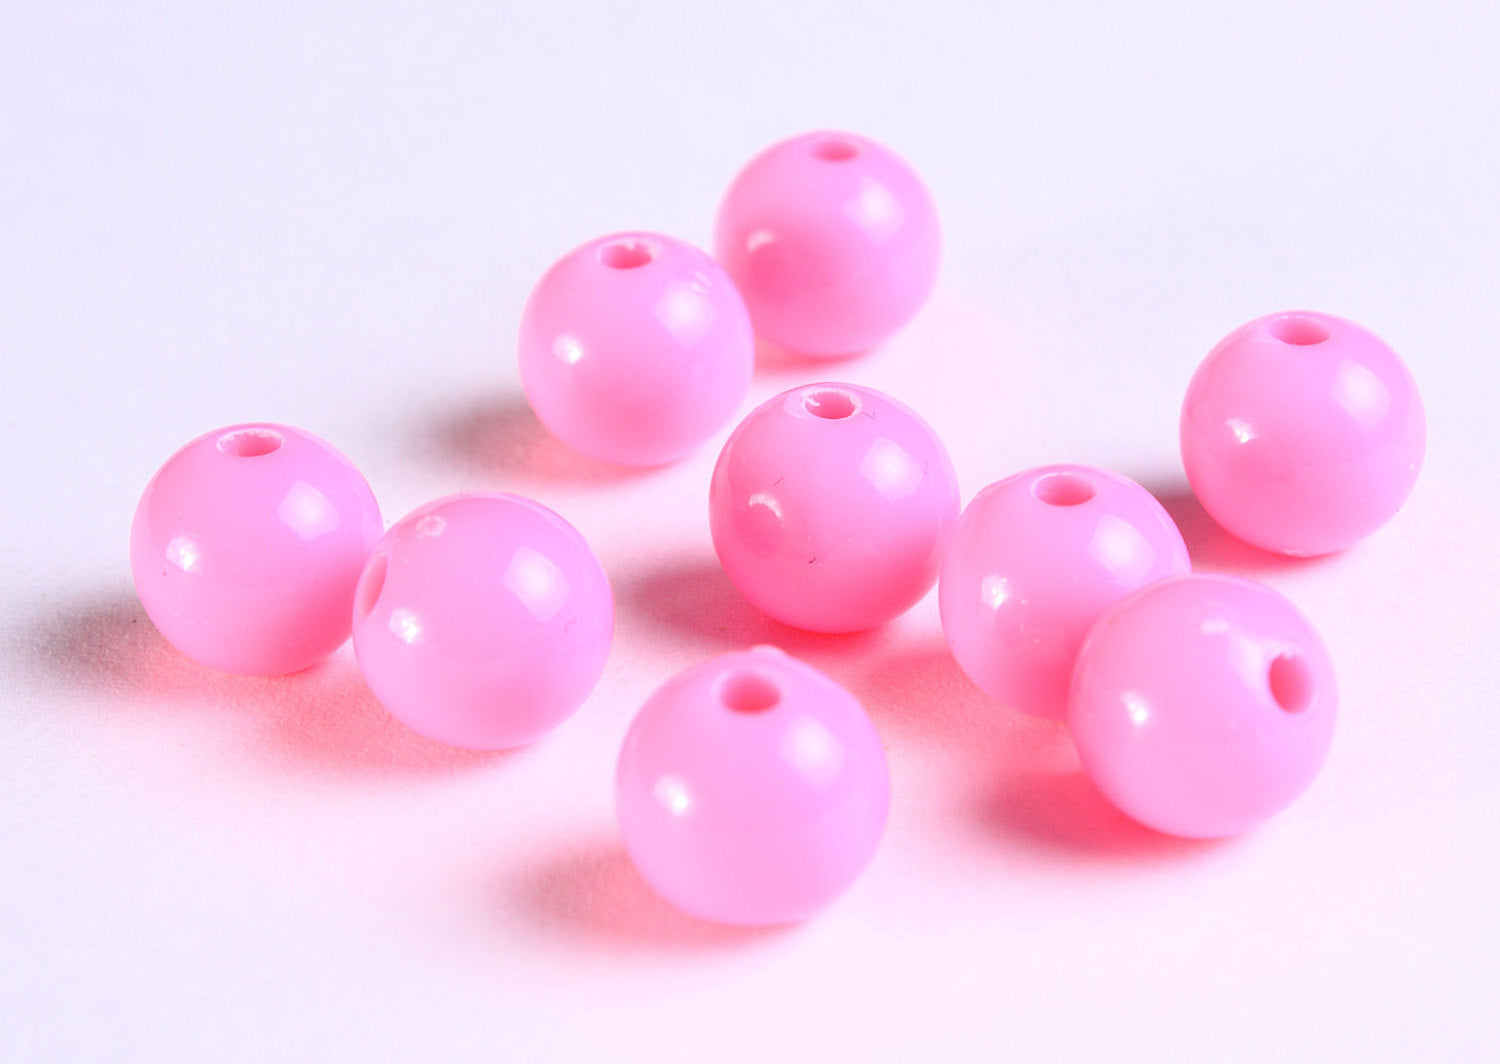 10mm Pink beads - 10mm opaque beads - 10mm round beads - 10 pieces (1123)